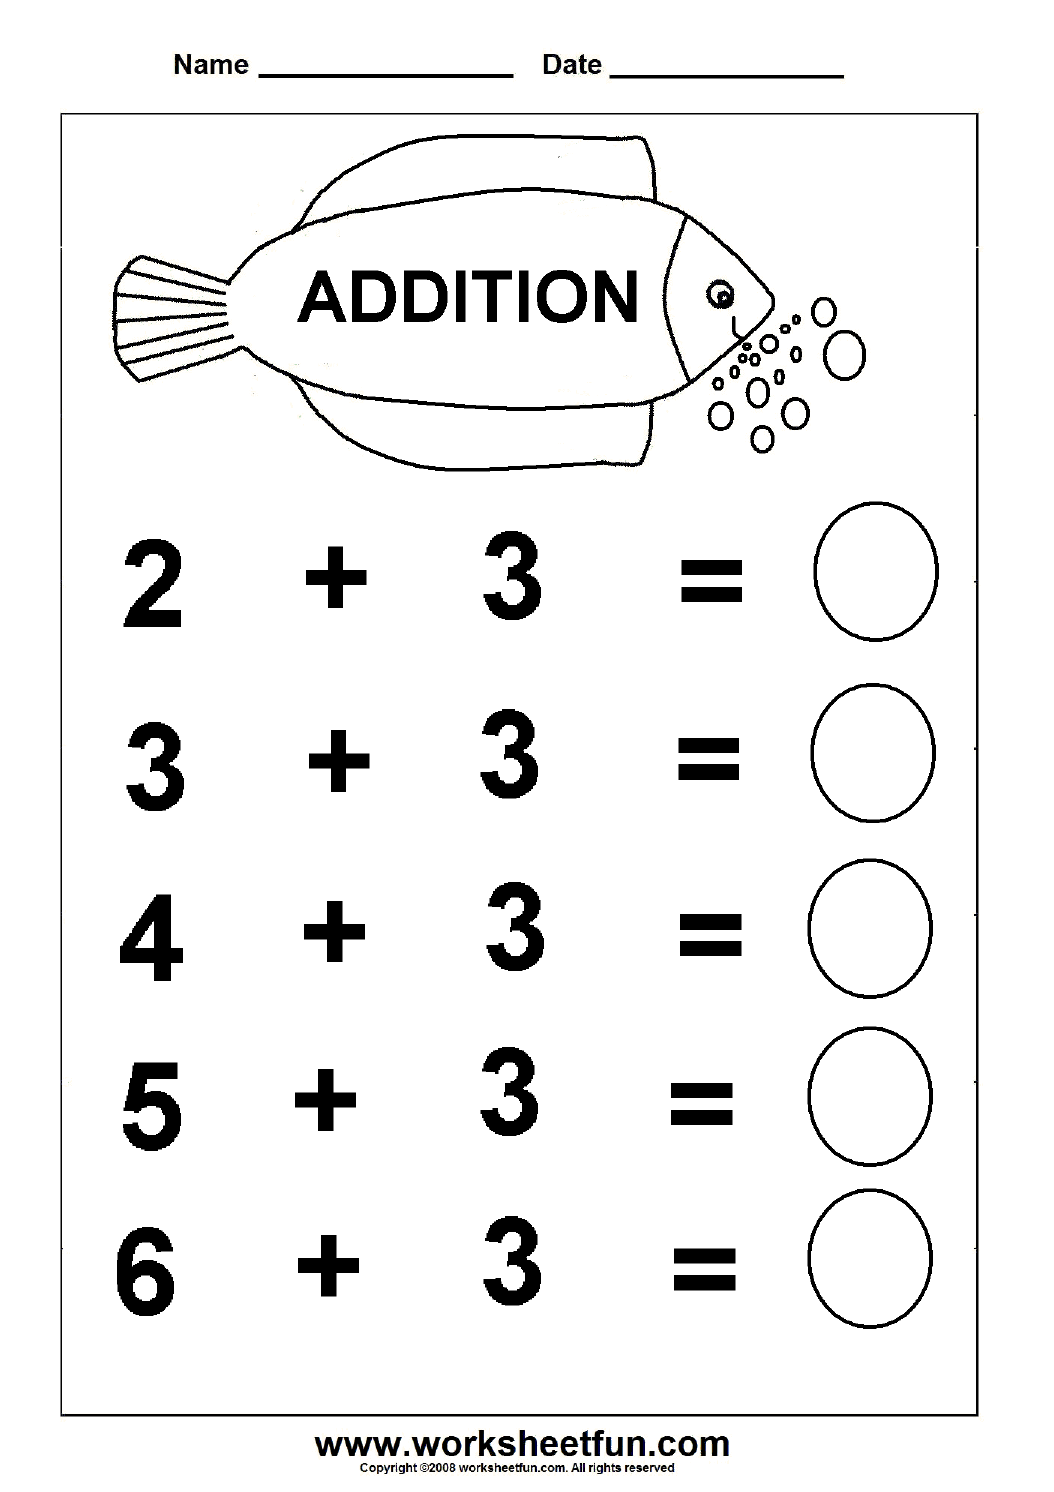 Worksheet Kindergarten Addition beginner addition 6 kindergarten worksheets free subtraction worksheets